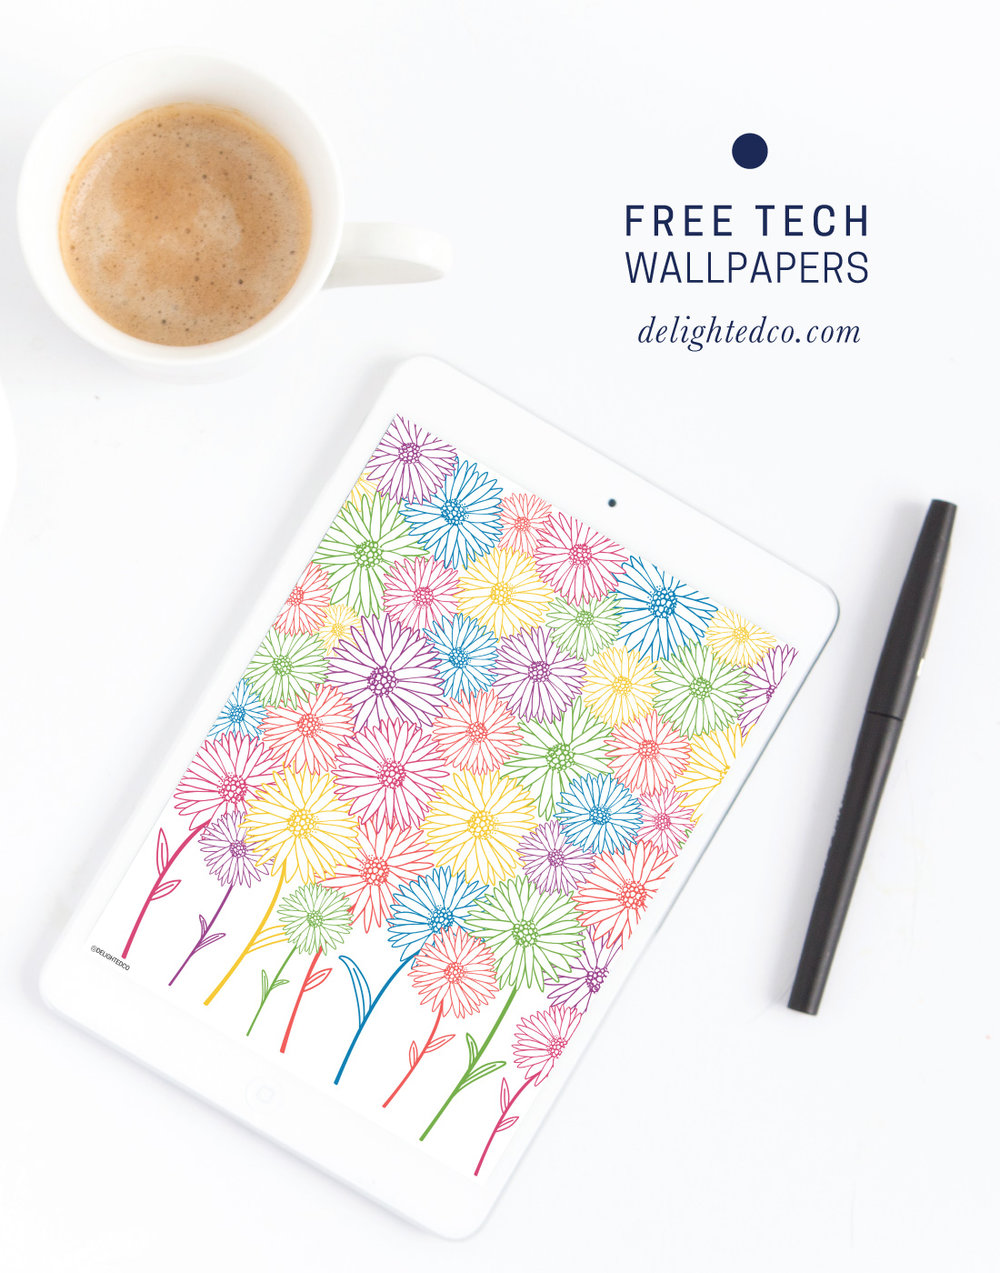 Free Tech Wallpaper by Amanda Gomes of Delighted Creative Co. • delightedco.com